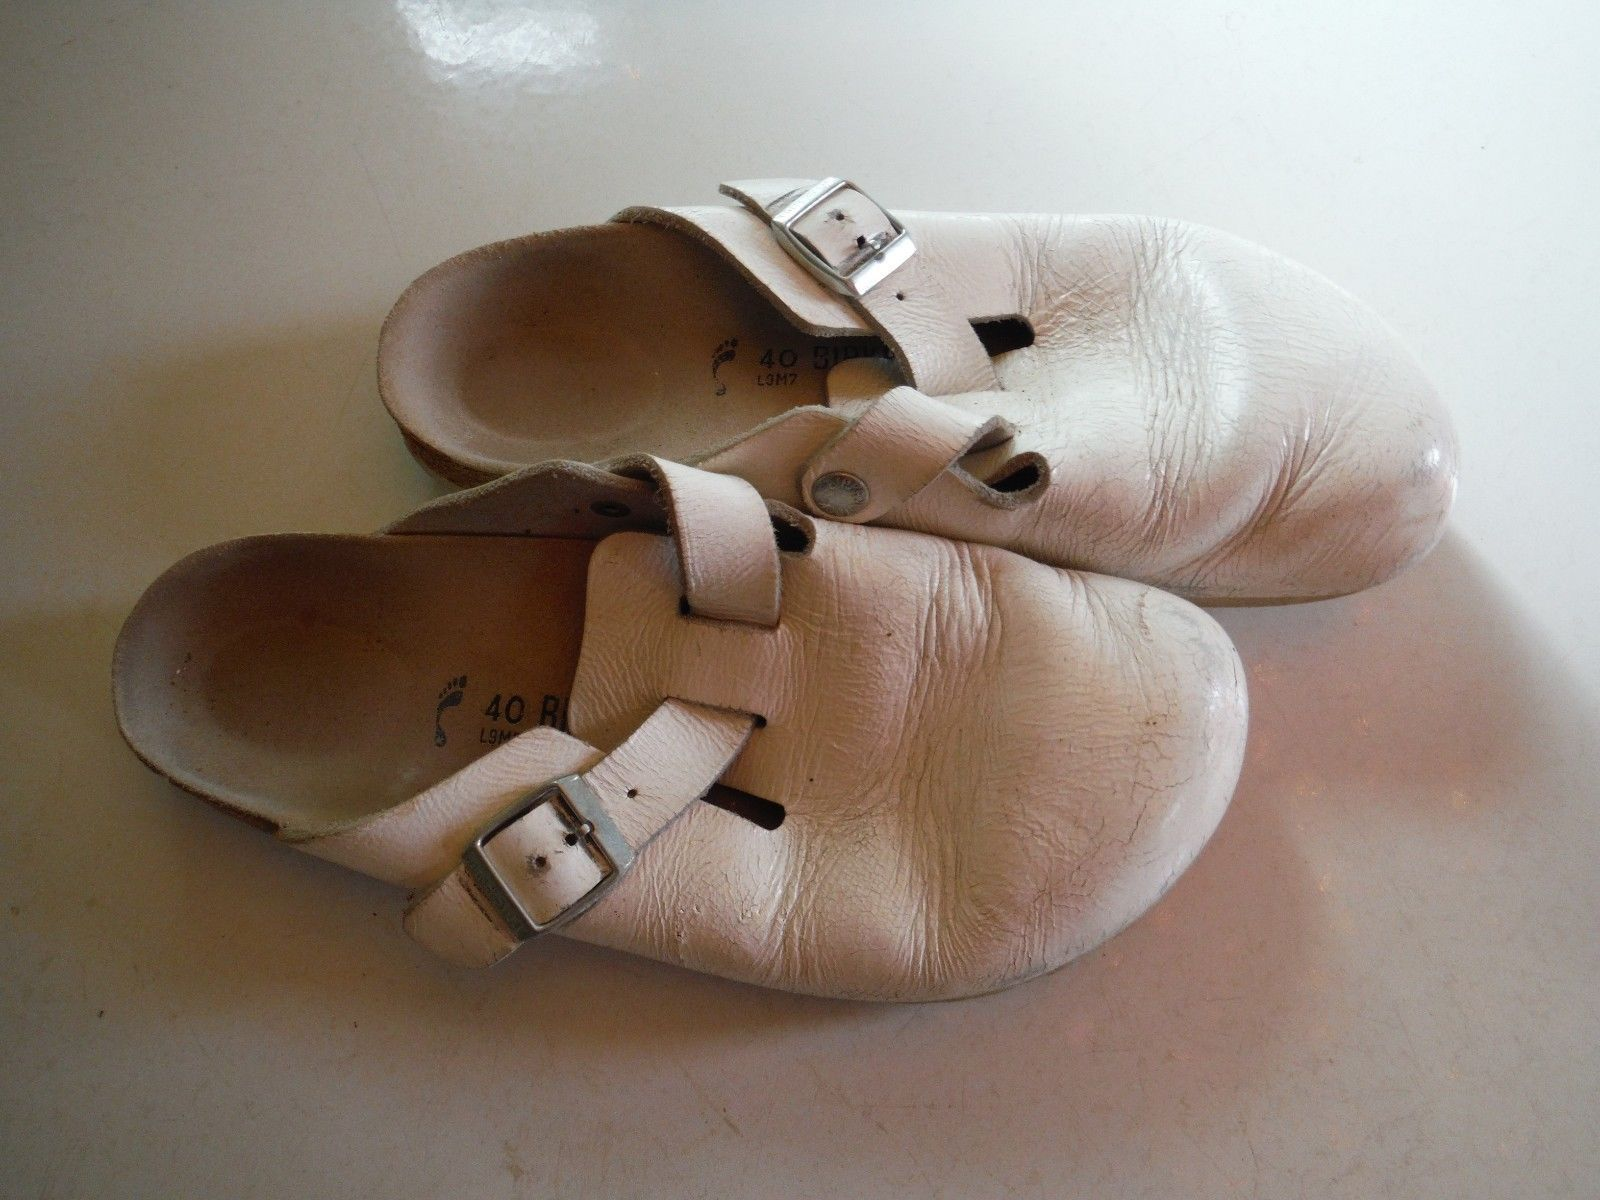 be69350f764a Birkenstock unisex white clogs shoes used and 36 similar items. S l1600